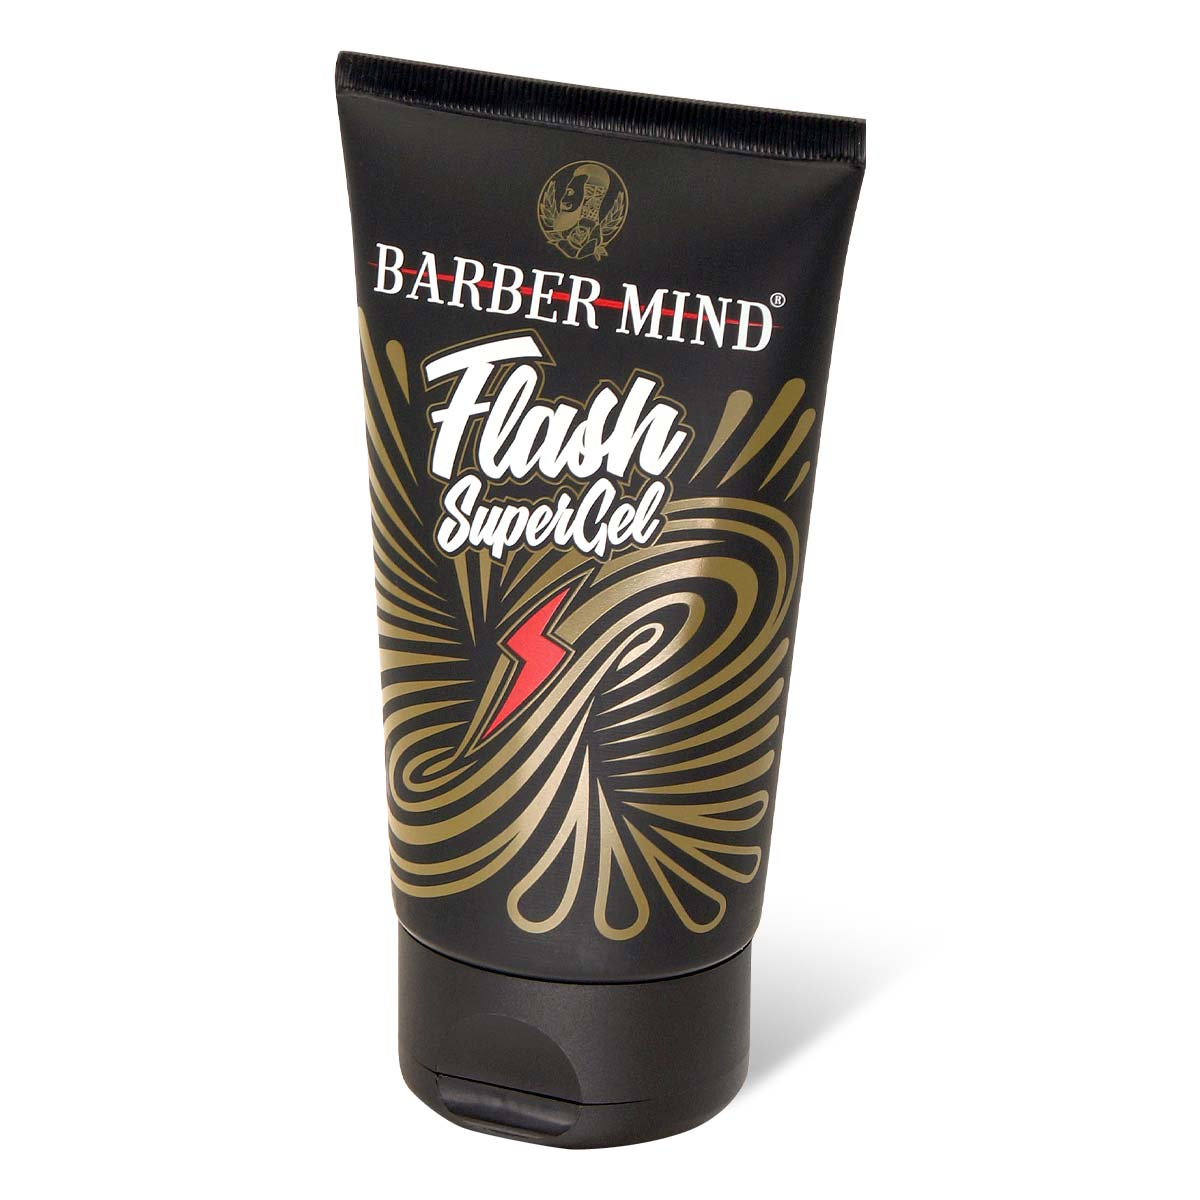 Barber Mind Flash Super Gel 150ml